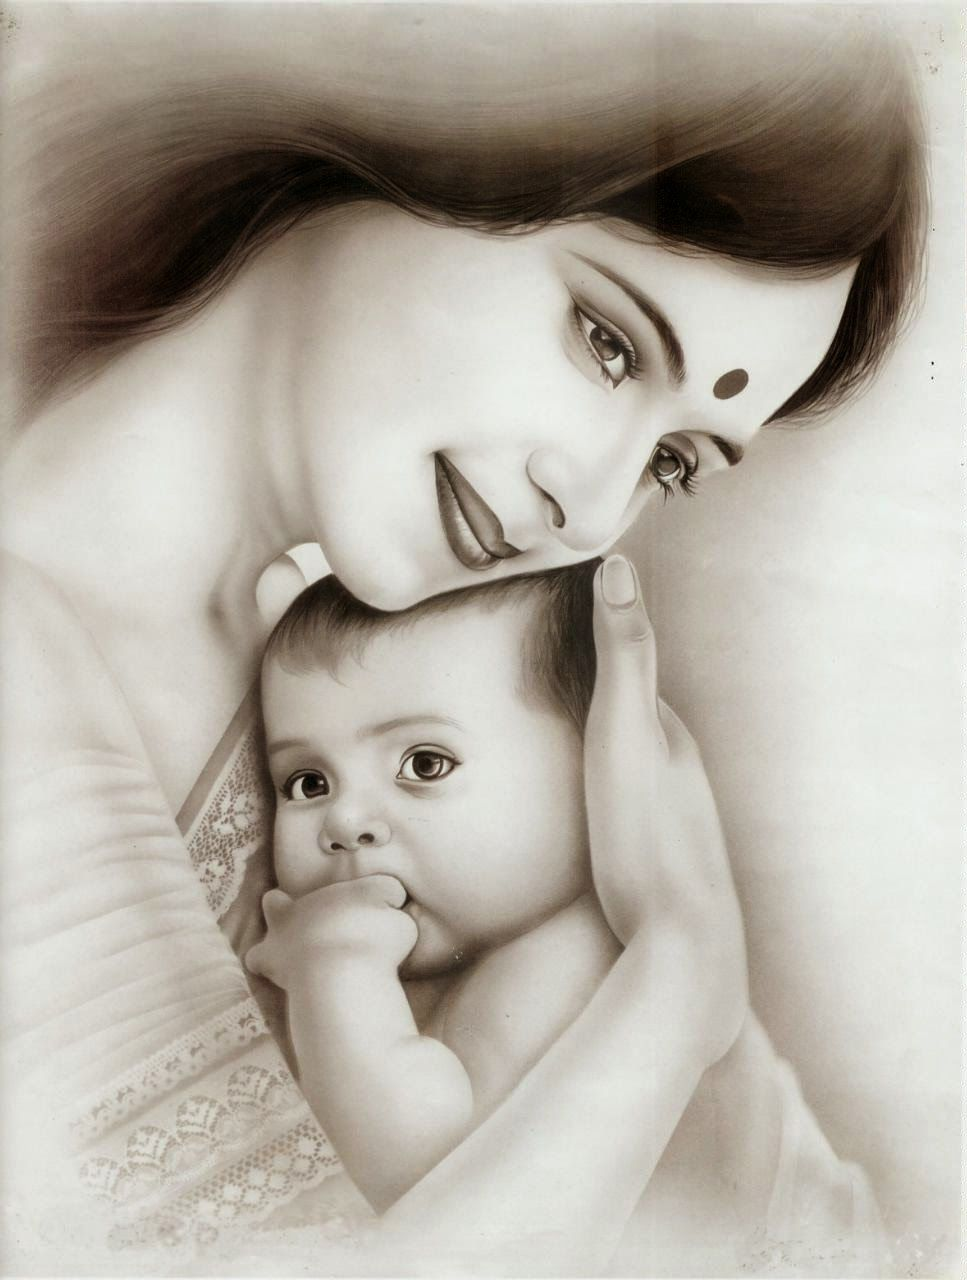 Development in infant and childhood ashwin in 2019